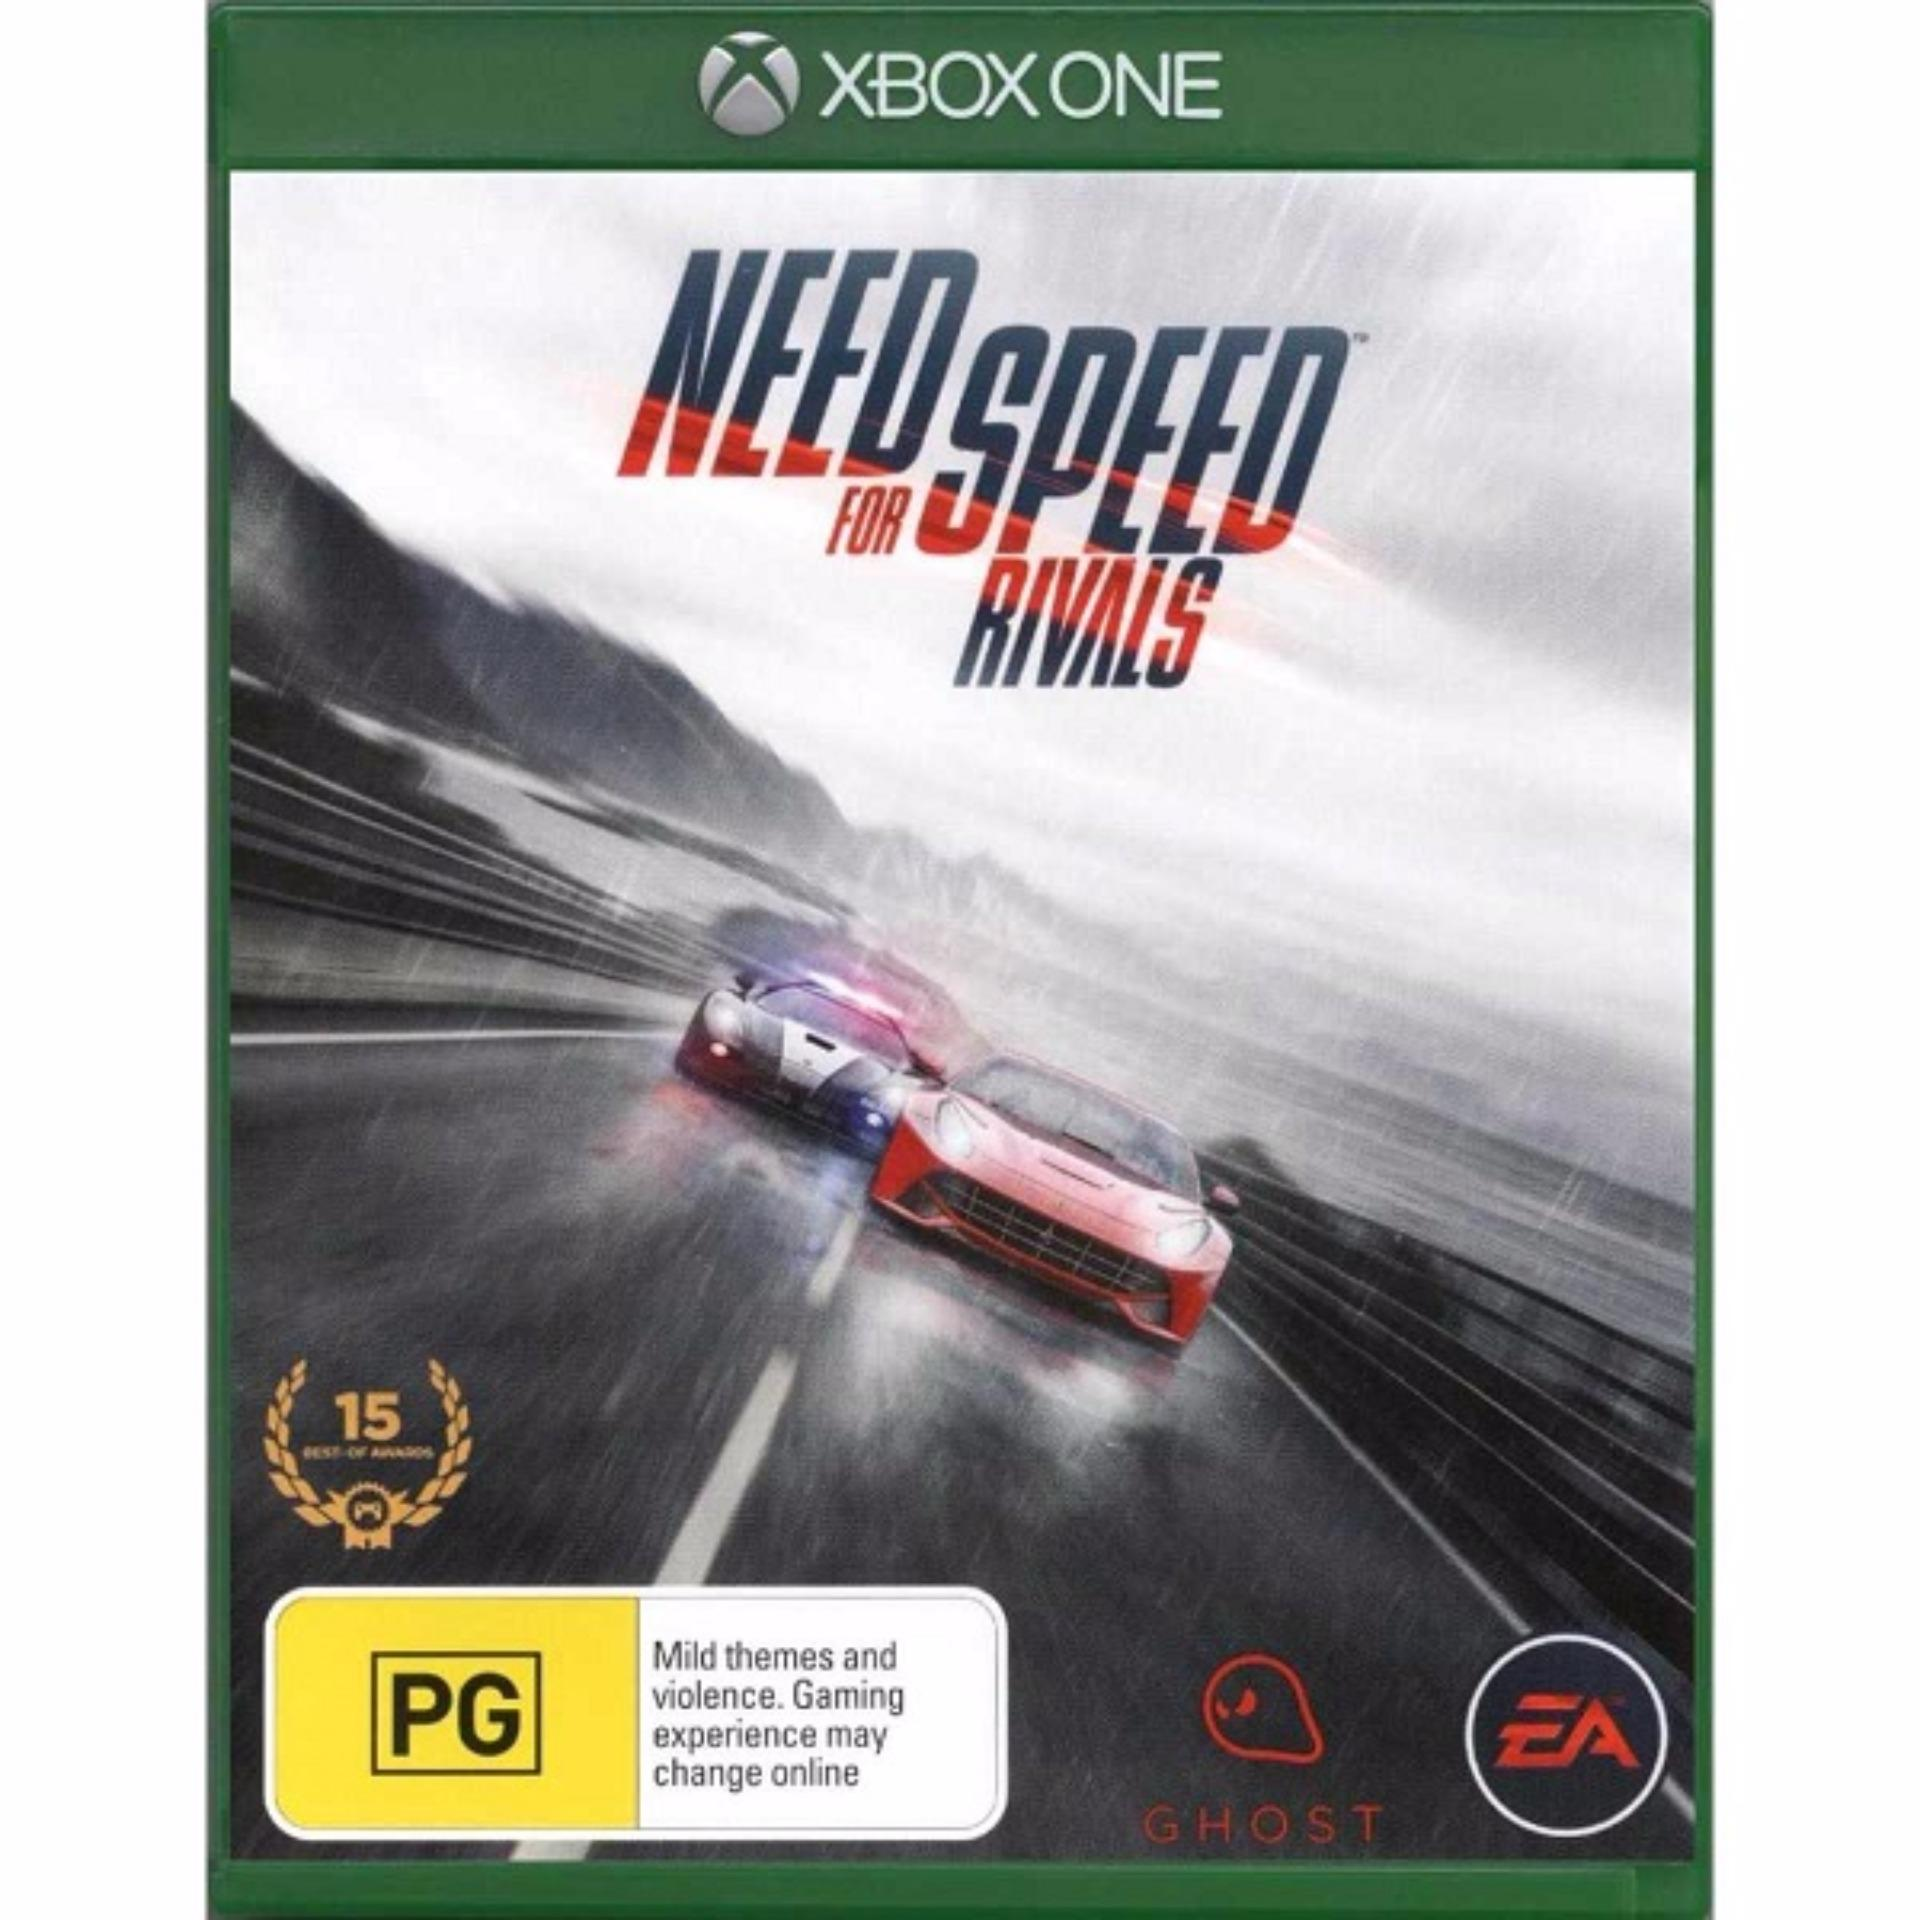 [Xbox One] Need for Speed Rivals